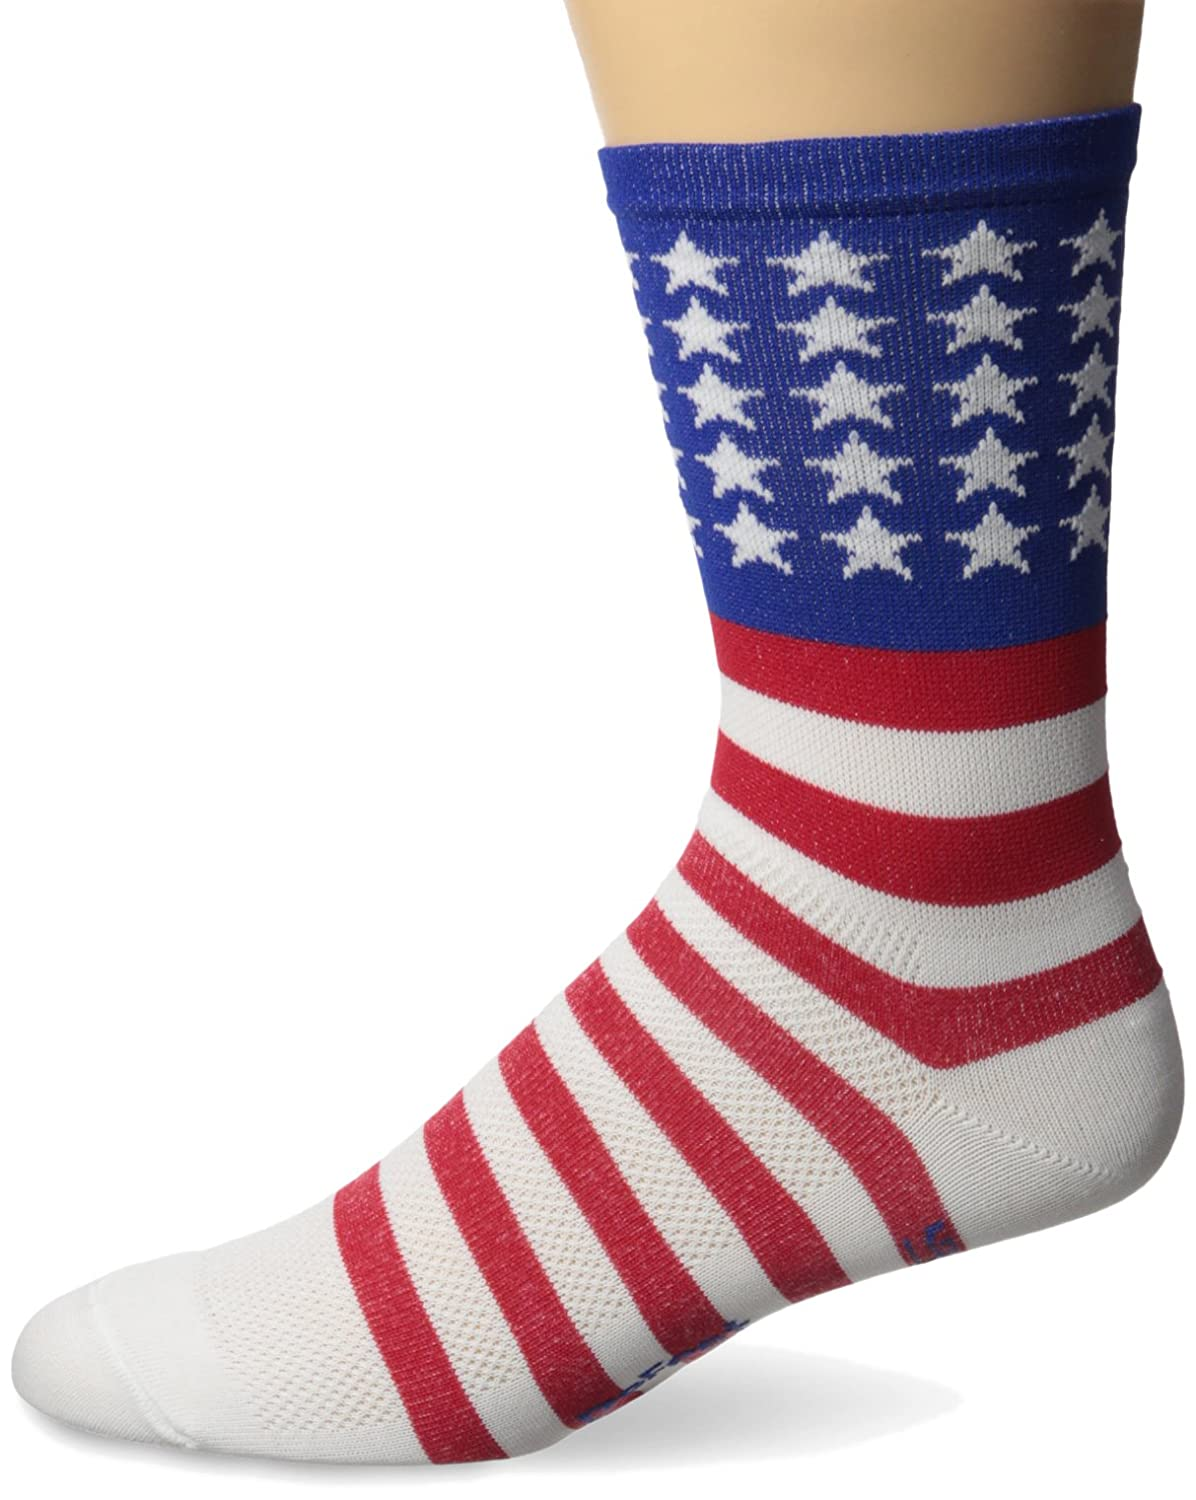 DEFEET Aireator USA with Stars and Bars 5 Cuff Socks Pro-Motion Distributing Direct AIRTUSA301